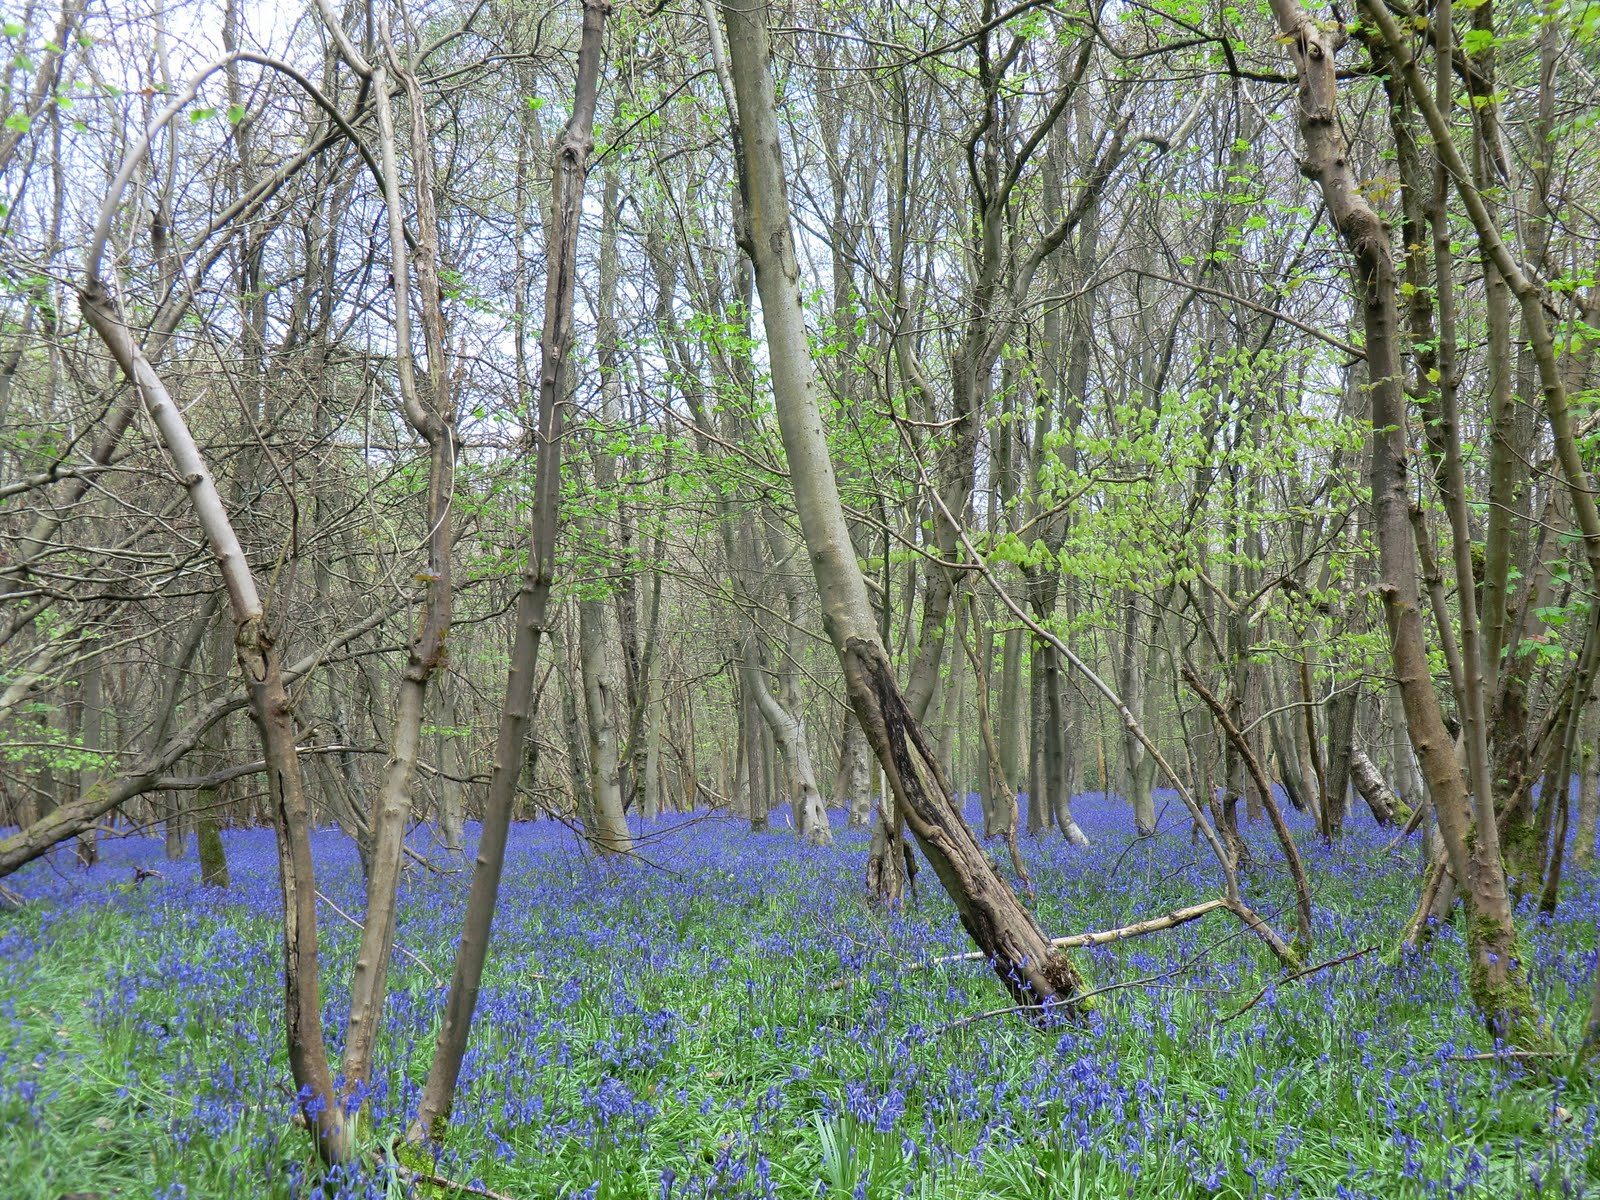 CIMG0750 Bluebells in Forge Wood